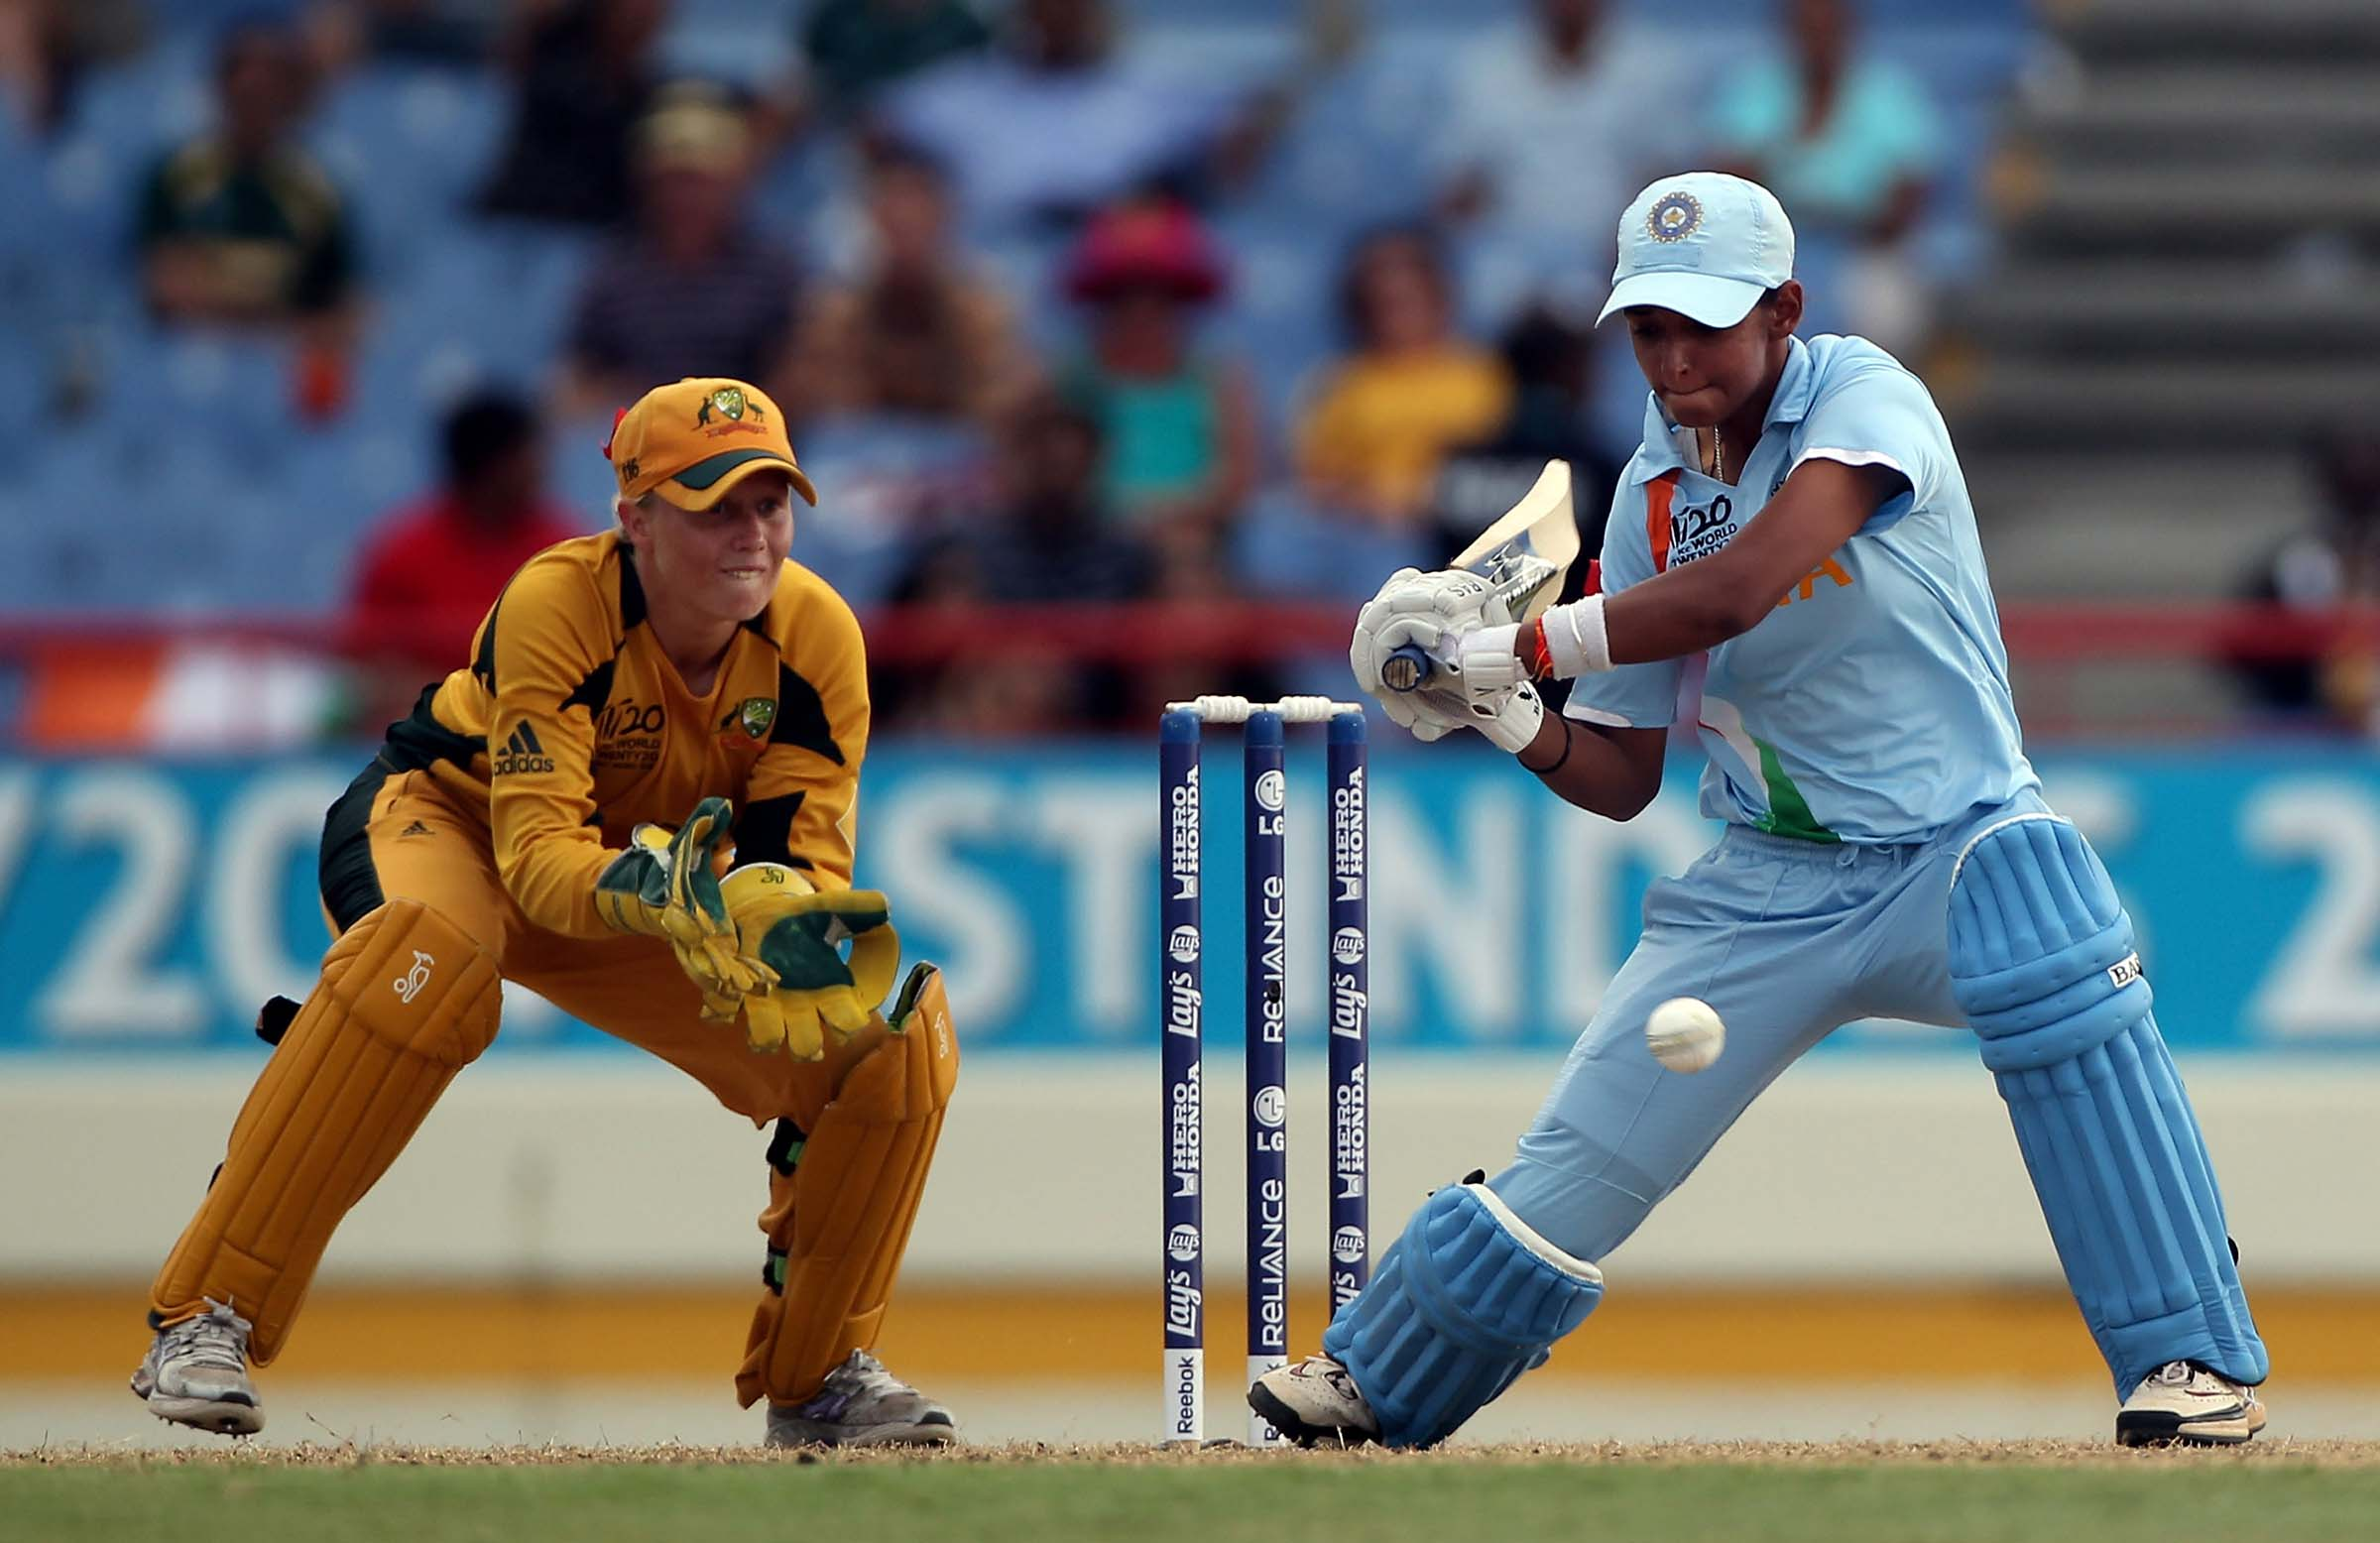 Healy keeps wicket during the 2010 T20 World Cup // Getty